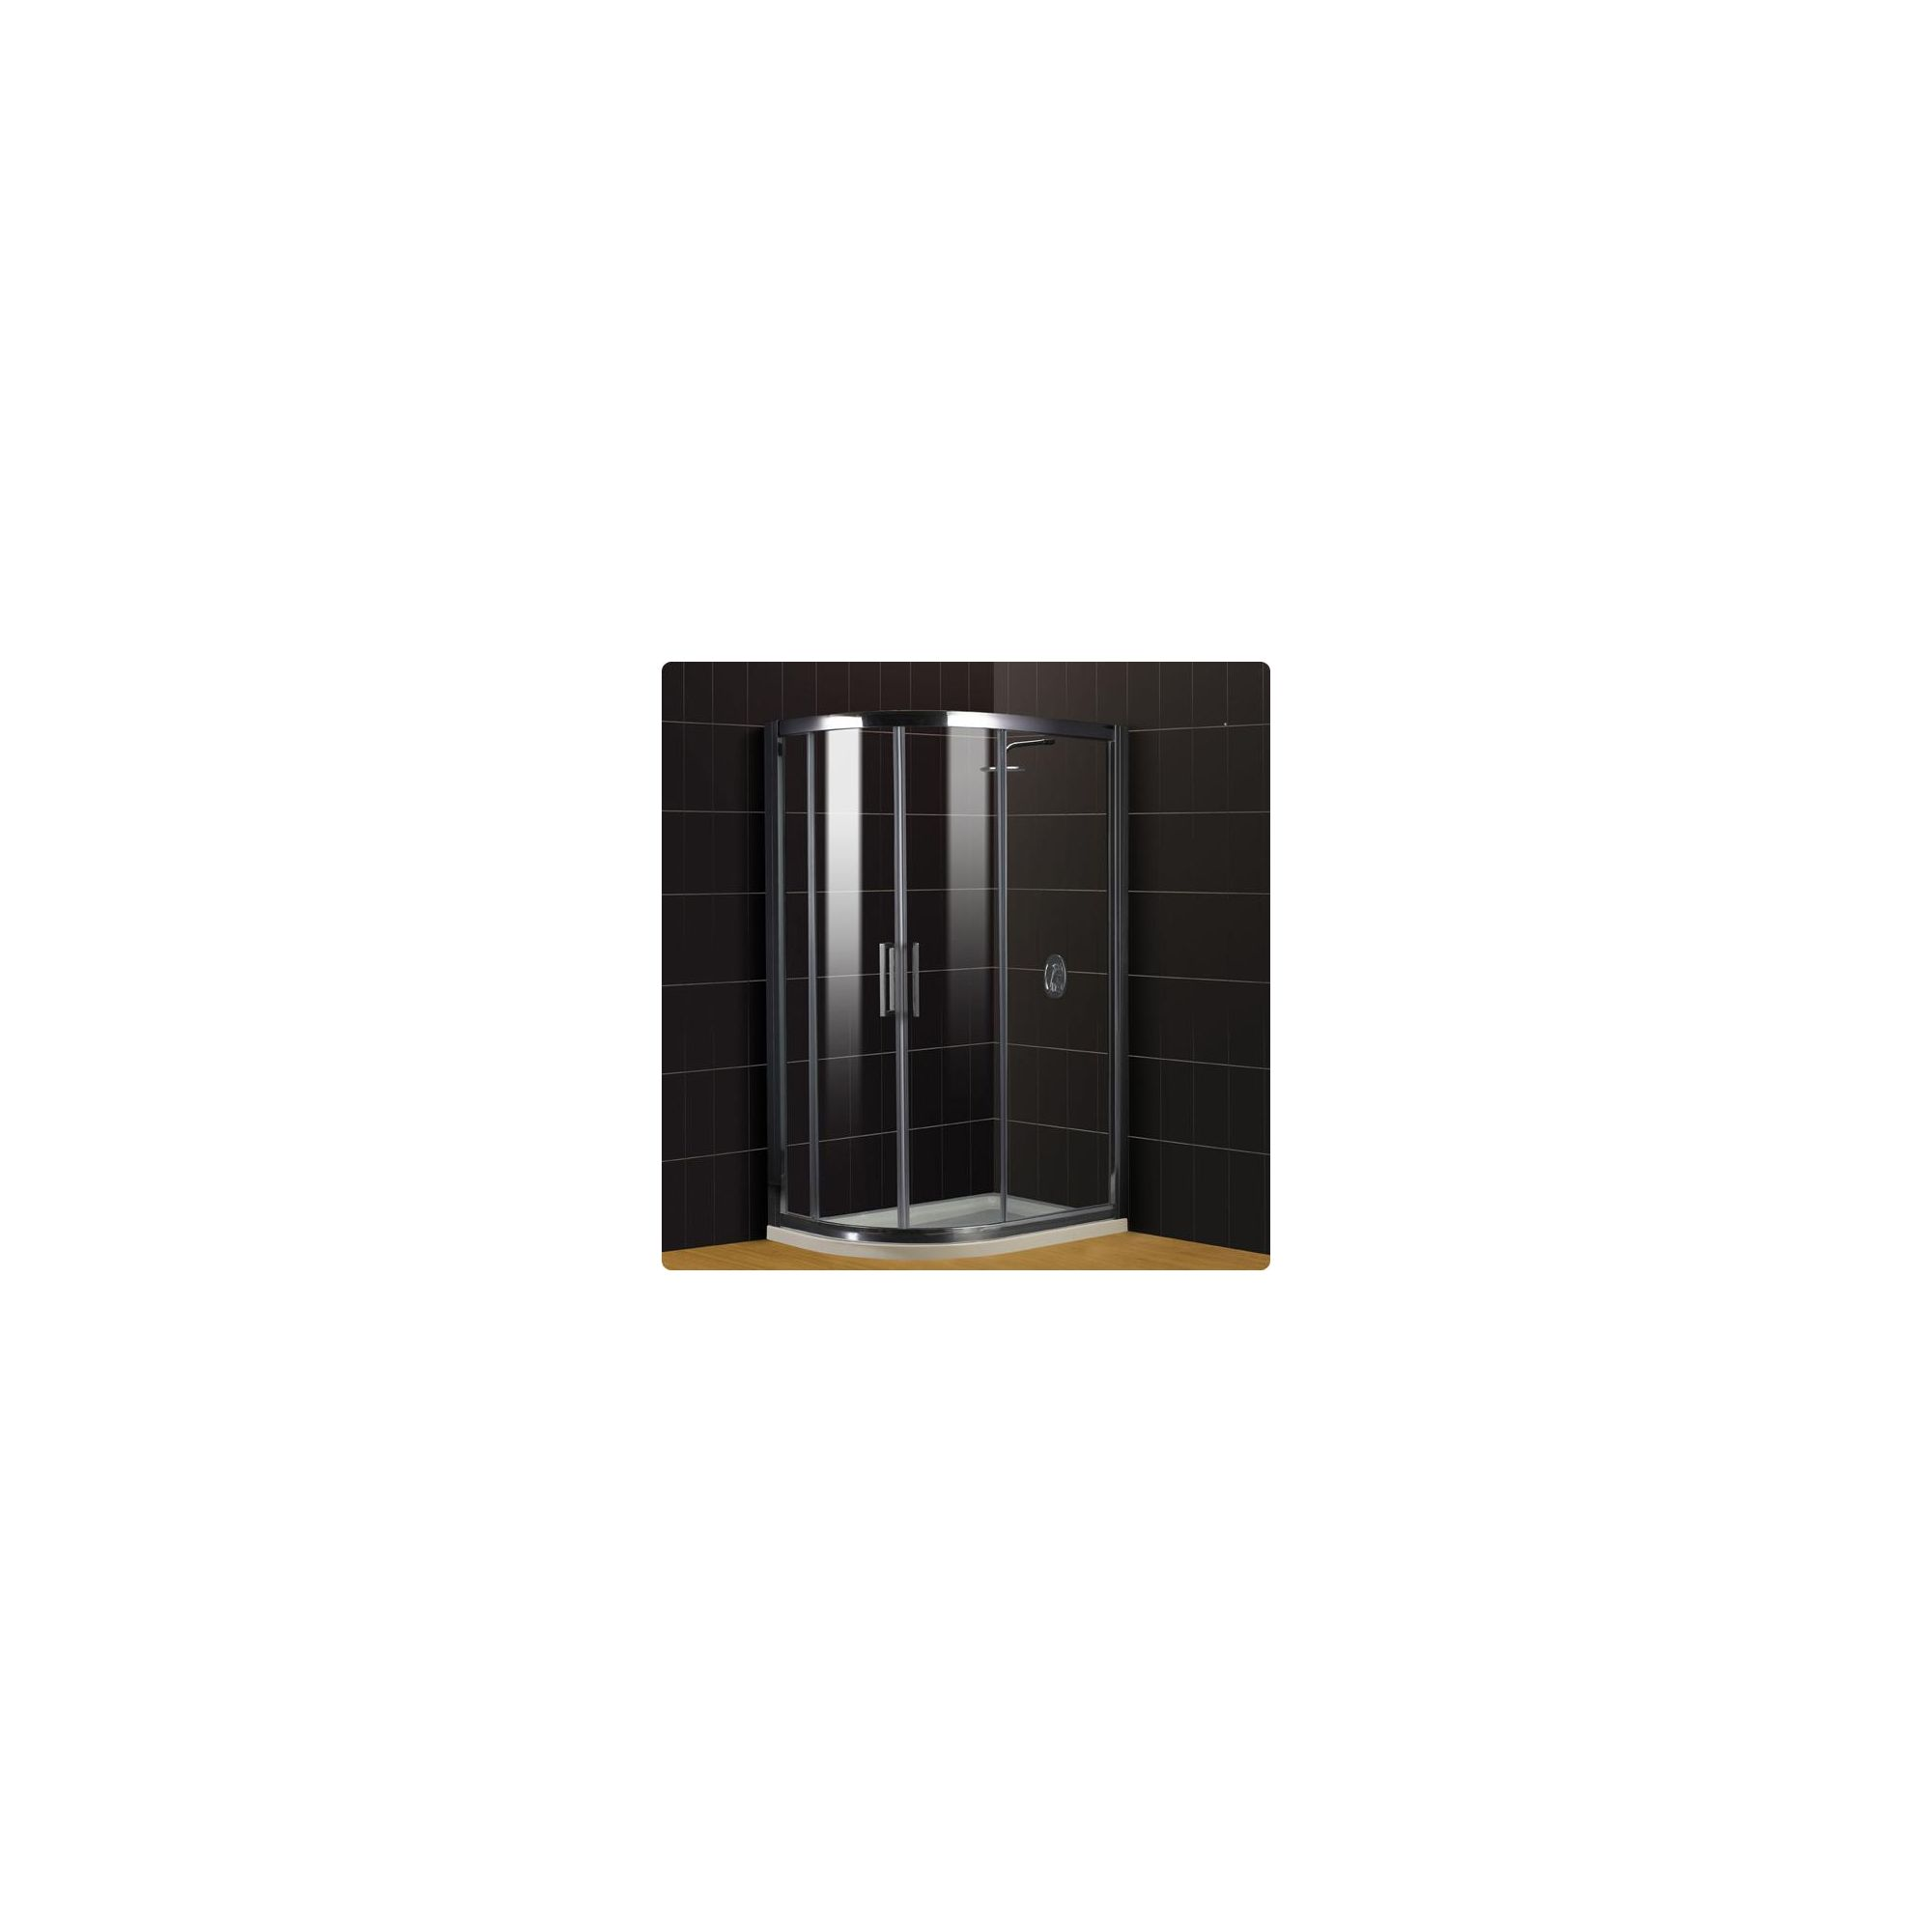 Duchy Supreme Silver Offset Quadrant Shower Enclosure (Complete with Tray) 900mm x 800mm, 8mm Glass at Tescos Direct